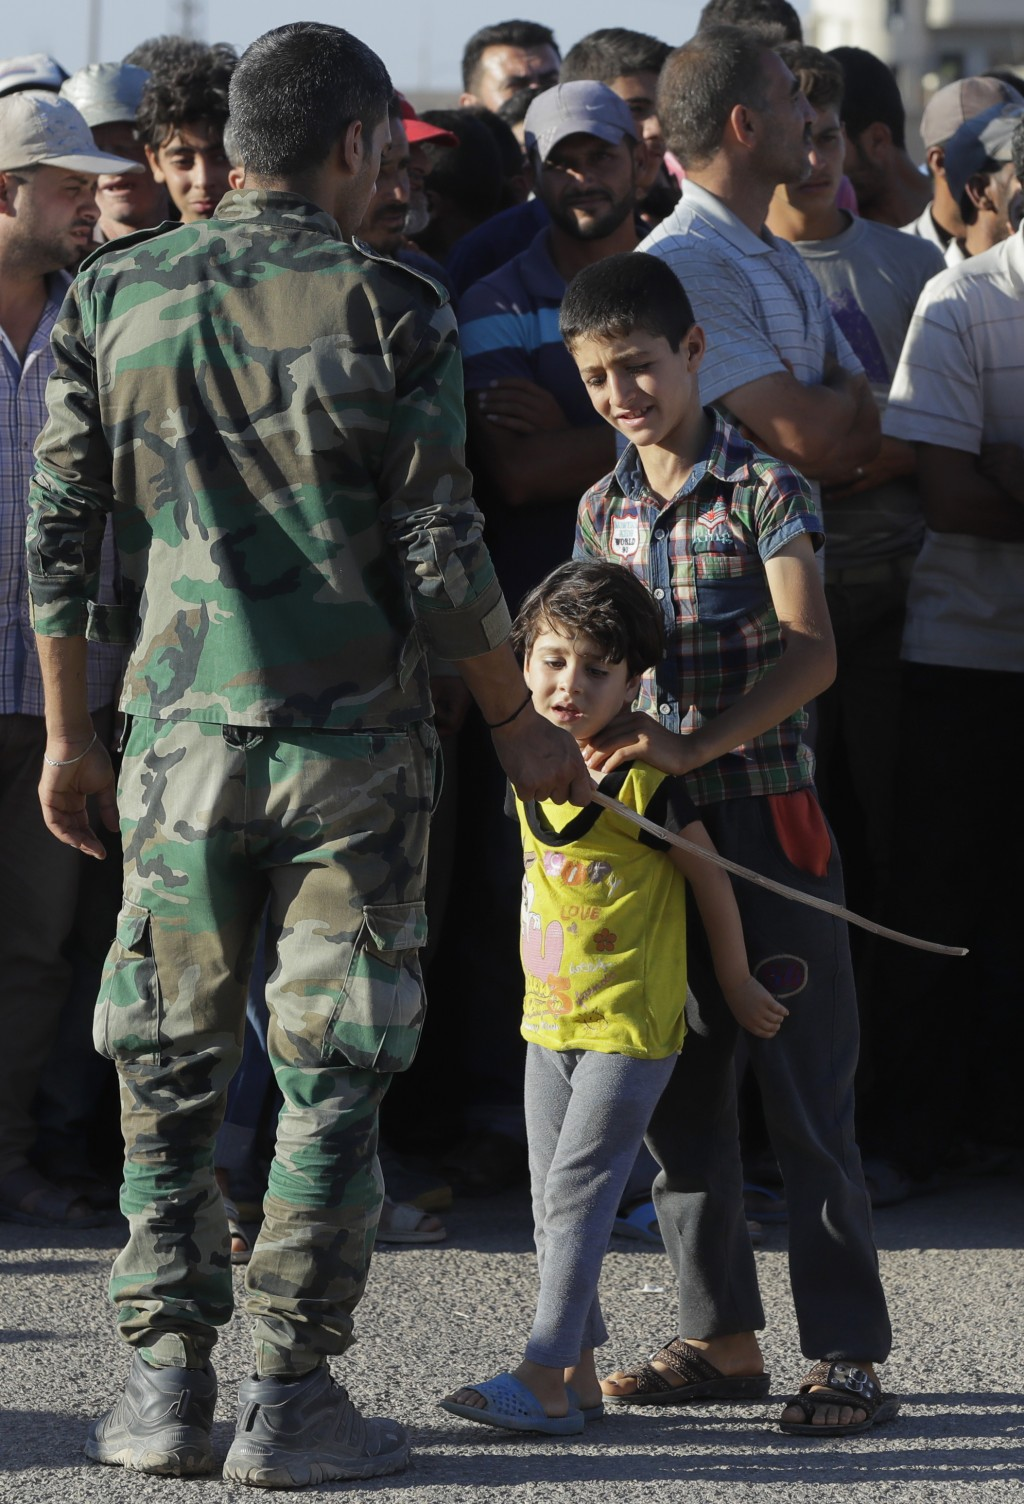 A soldier of Syrian army blocks a way for local children during distribution of humanitarian aid from the Russian military in the town of Rastan, Syri...